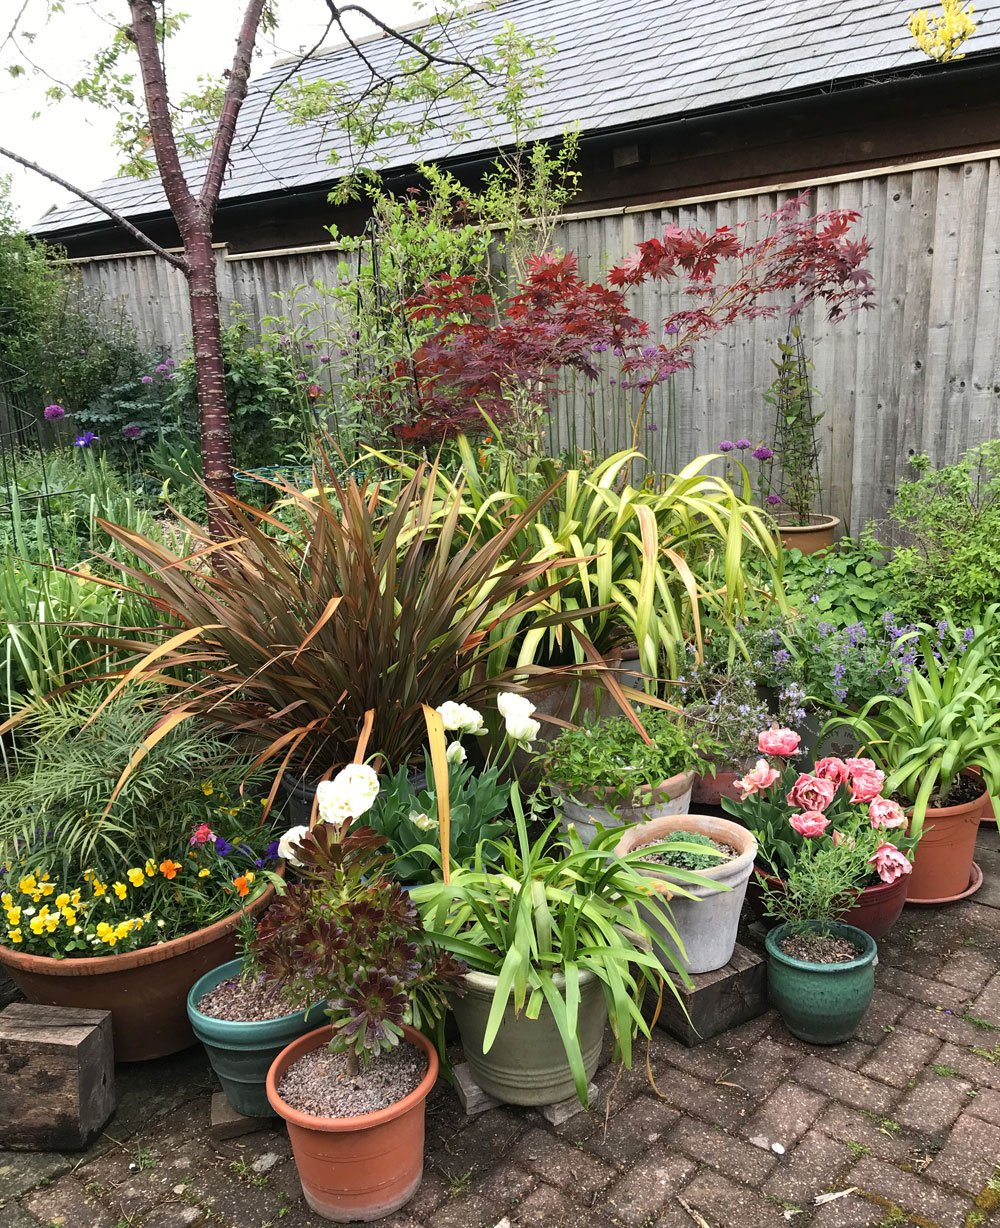 Sheelagh's pots looking lovely